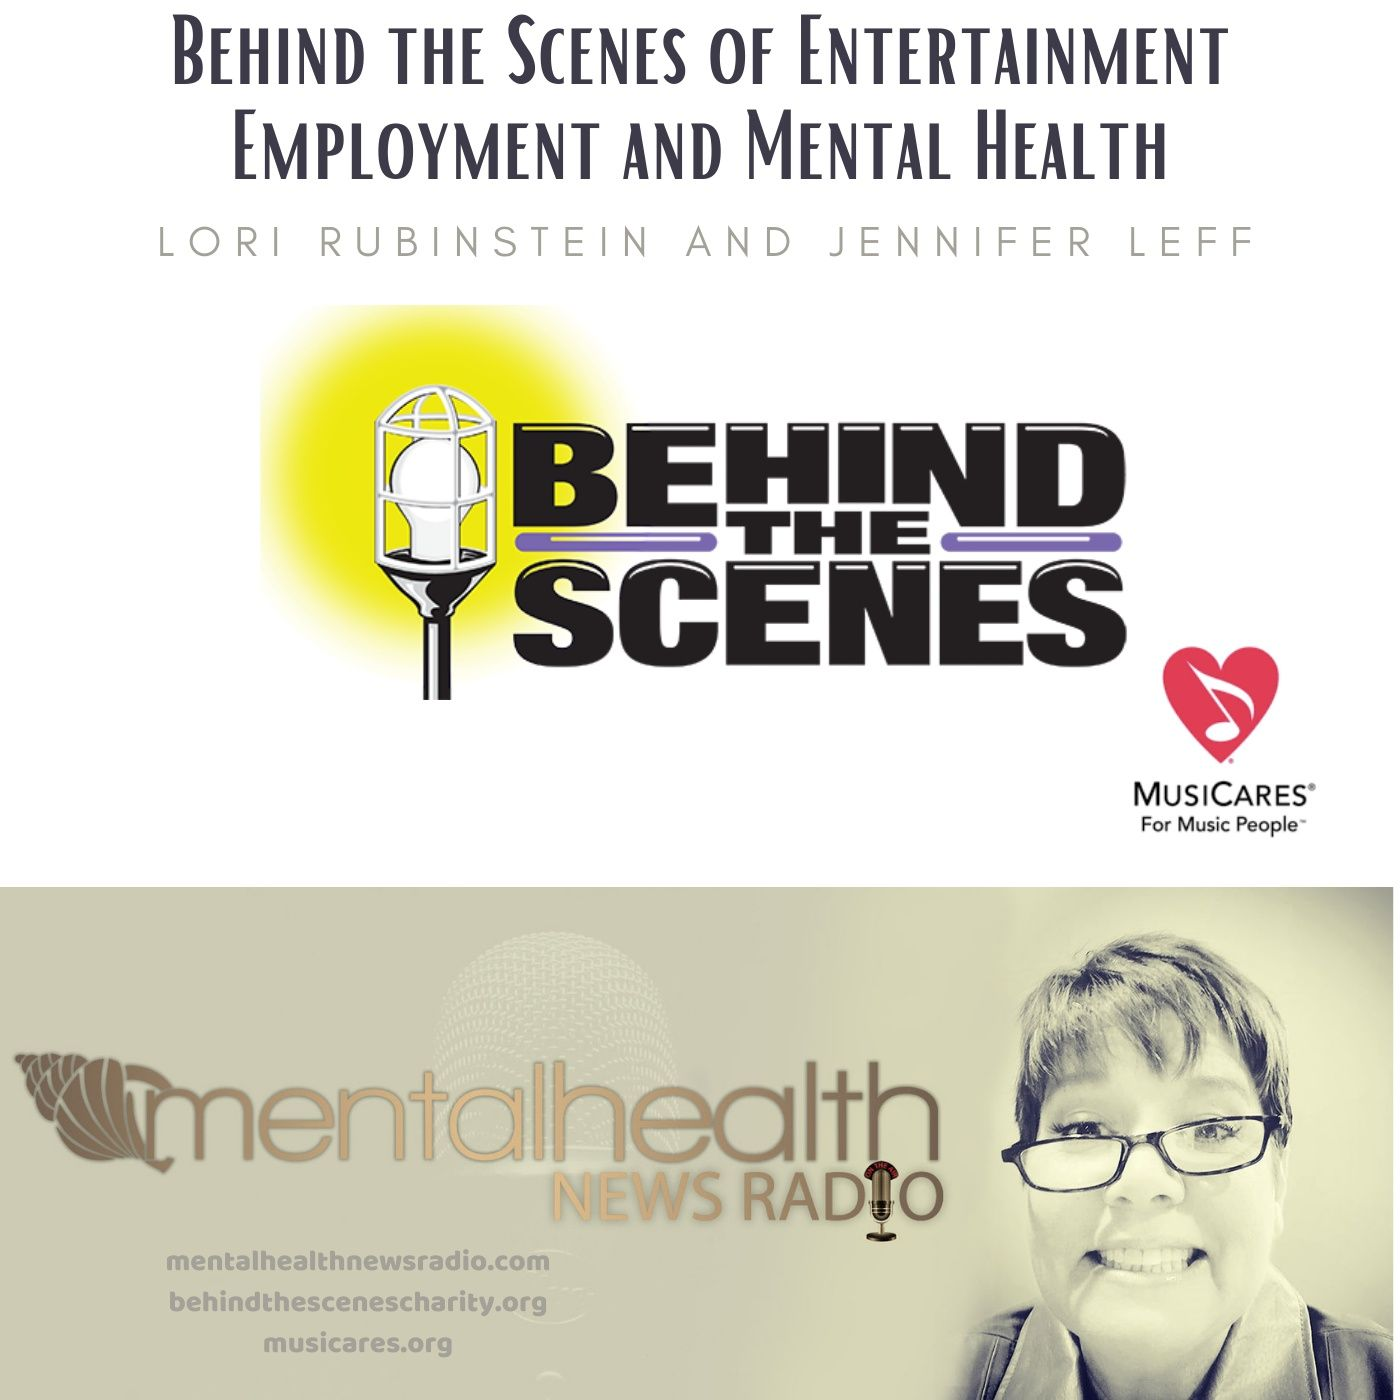 Mental Health News Radio - Behind the Scenes of Entertainment Employment and Mental Health